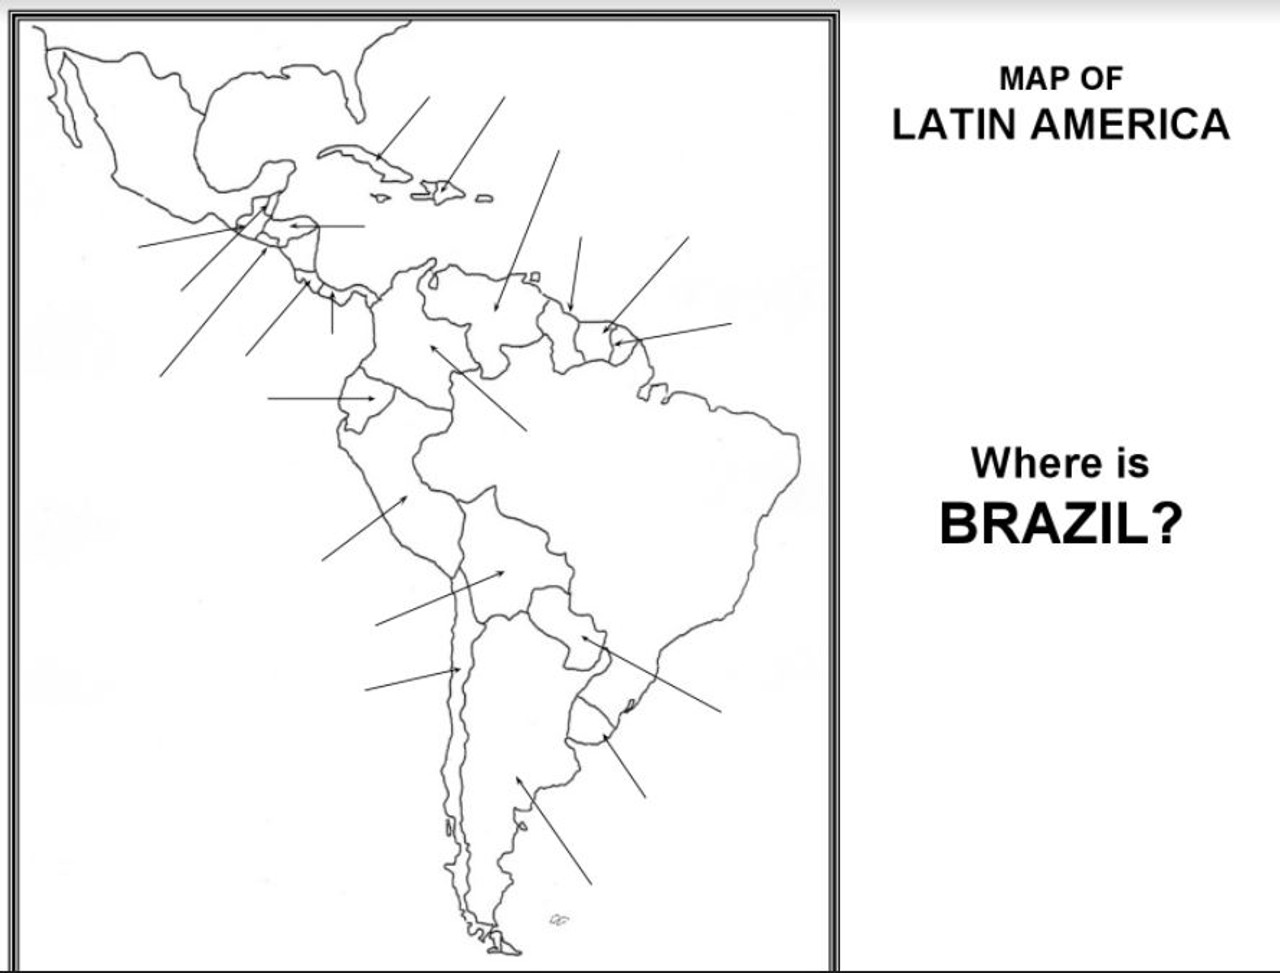 medium resolution of Latin America Map Activity - Amped Up Learning